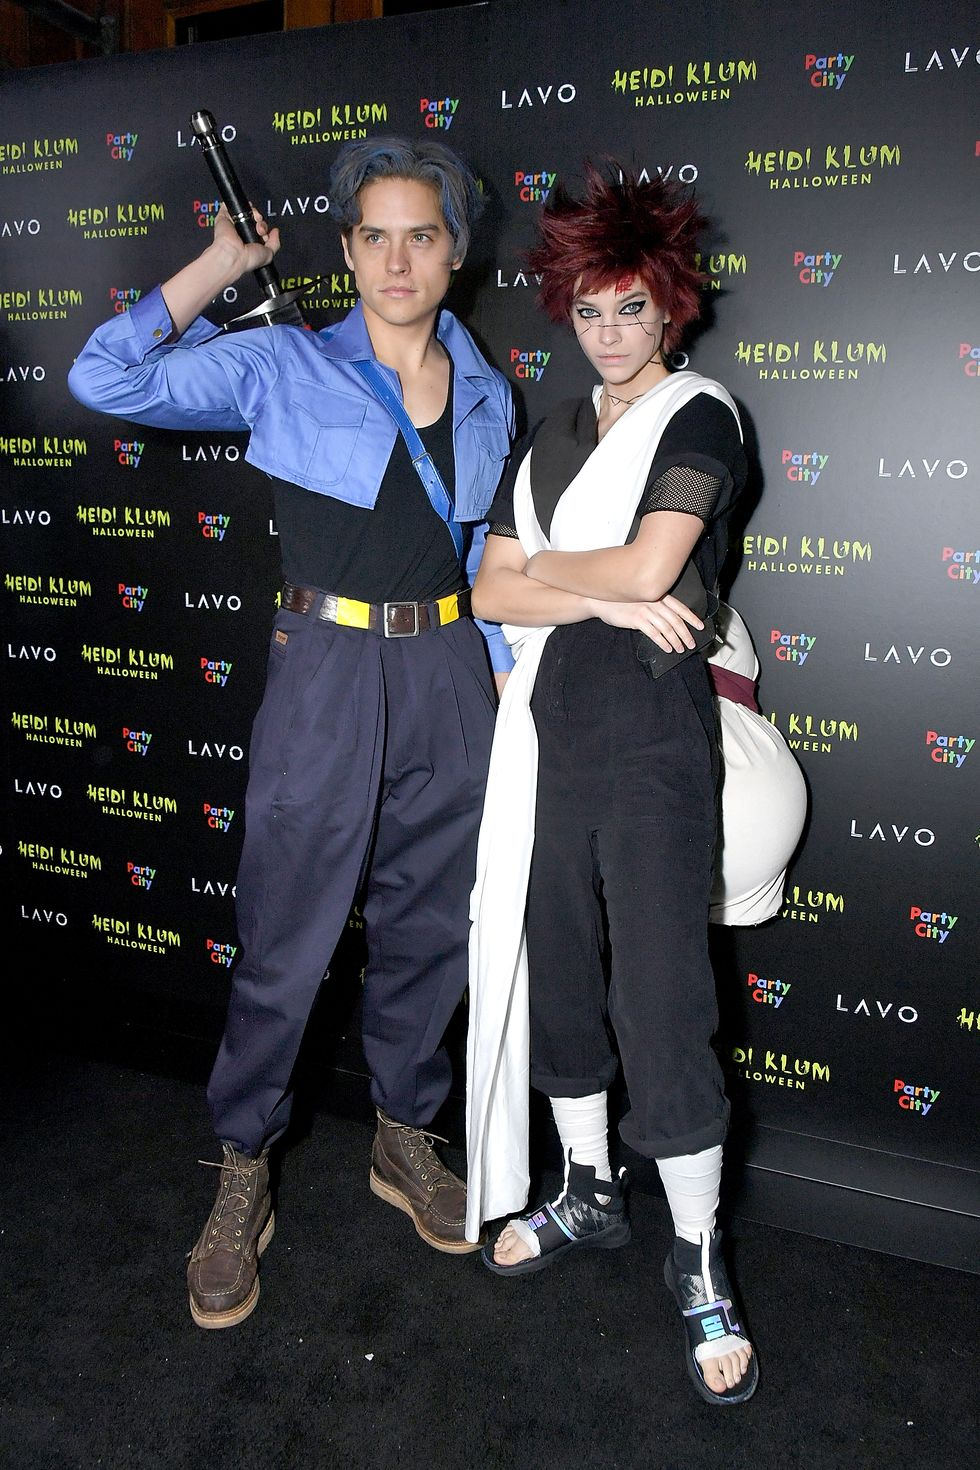 Dylan Sprouse and Barbara Palvin - Anime Couple At Heidi Klum's famed Halloween bash in 2018, Dylan Sprouse and Barbara Palvin donned coordinating anime costumes. (Visit a cosplay store for an easy re-creation.